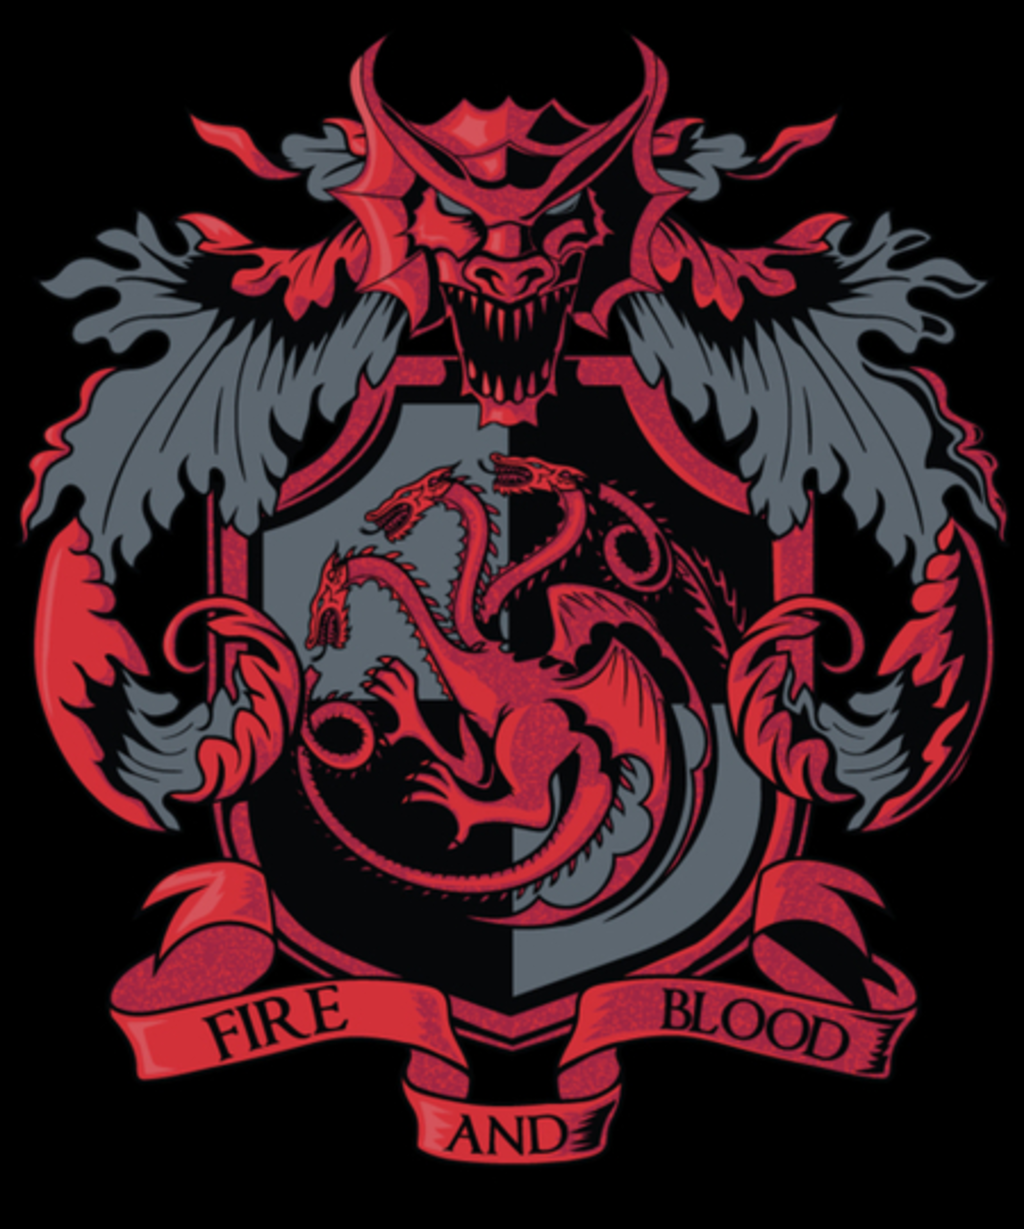 Qwertee: I belong to the house Targaryen